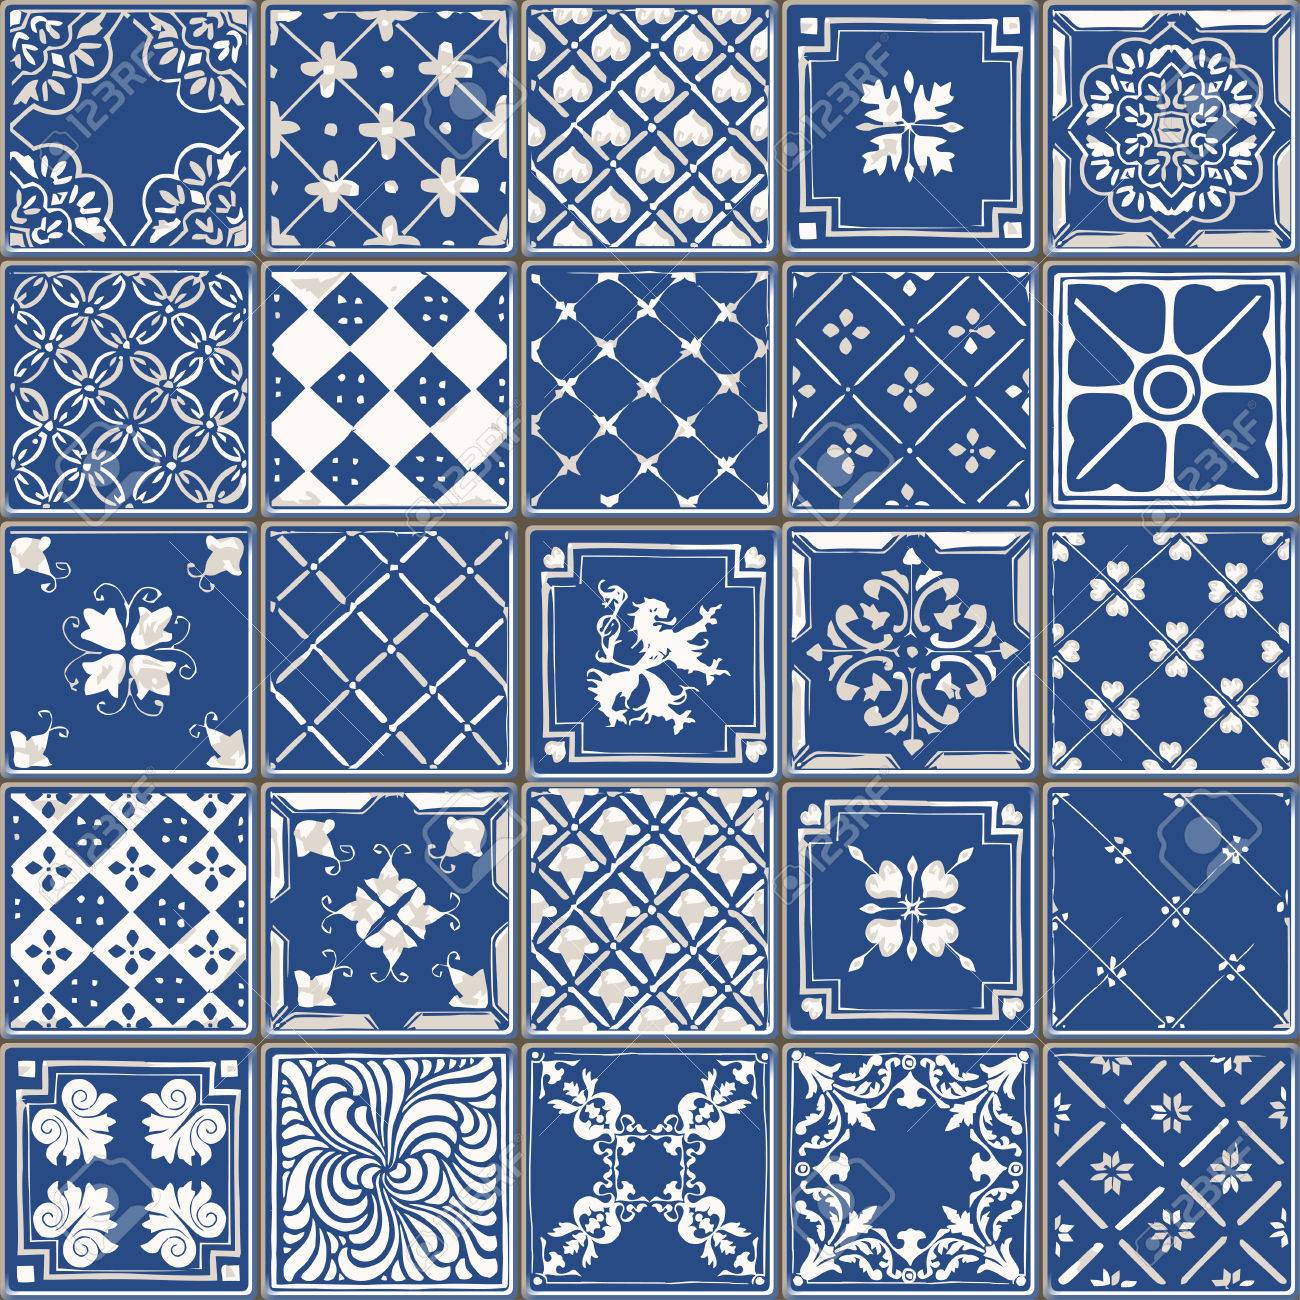 Indigo Blue Tiles Floor Ornament Collection. Gorgeous Seamless ...